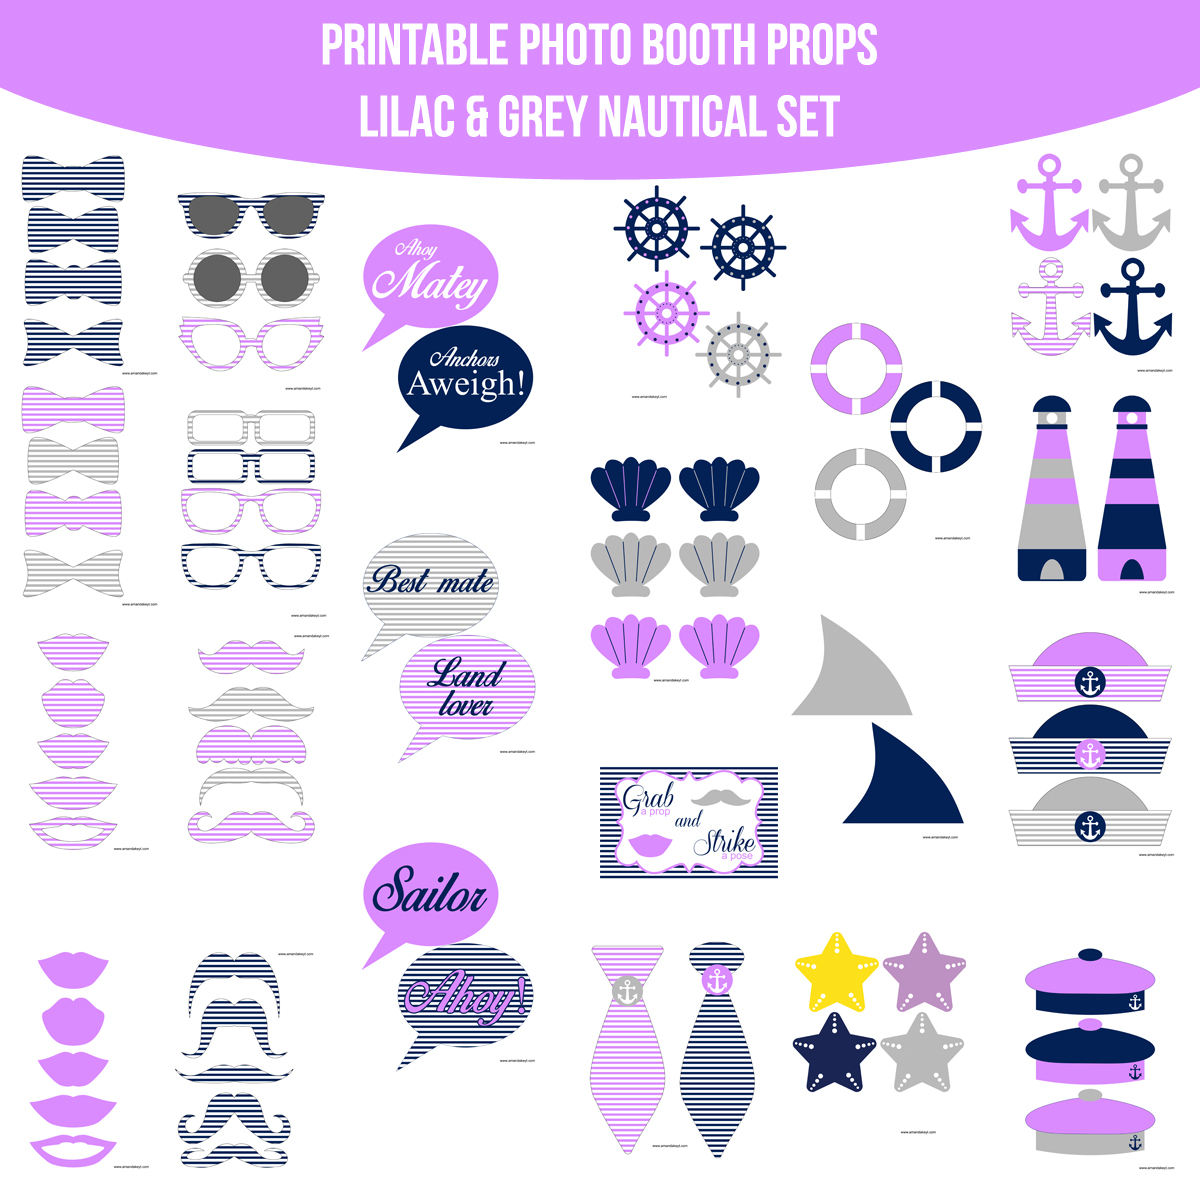 See the Set - To View The Whole Nautical Lilac Grey Printable Photo Booth Prop Set Click Here